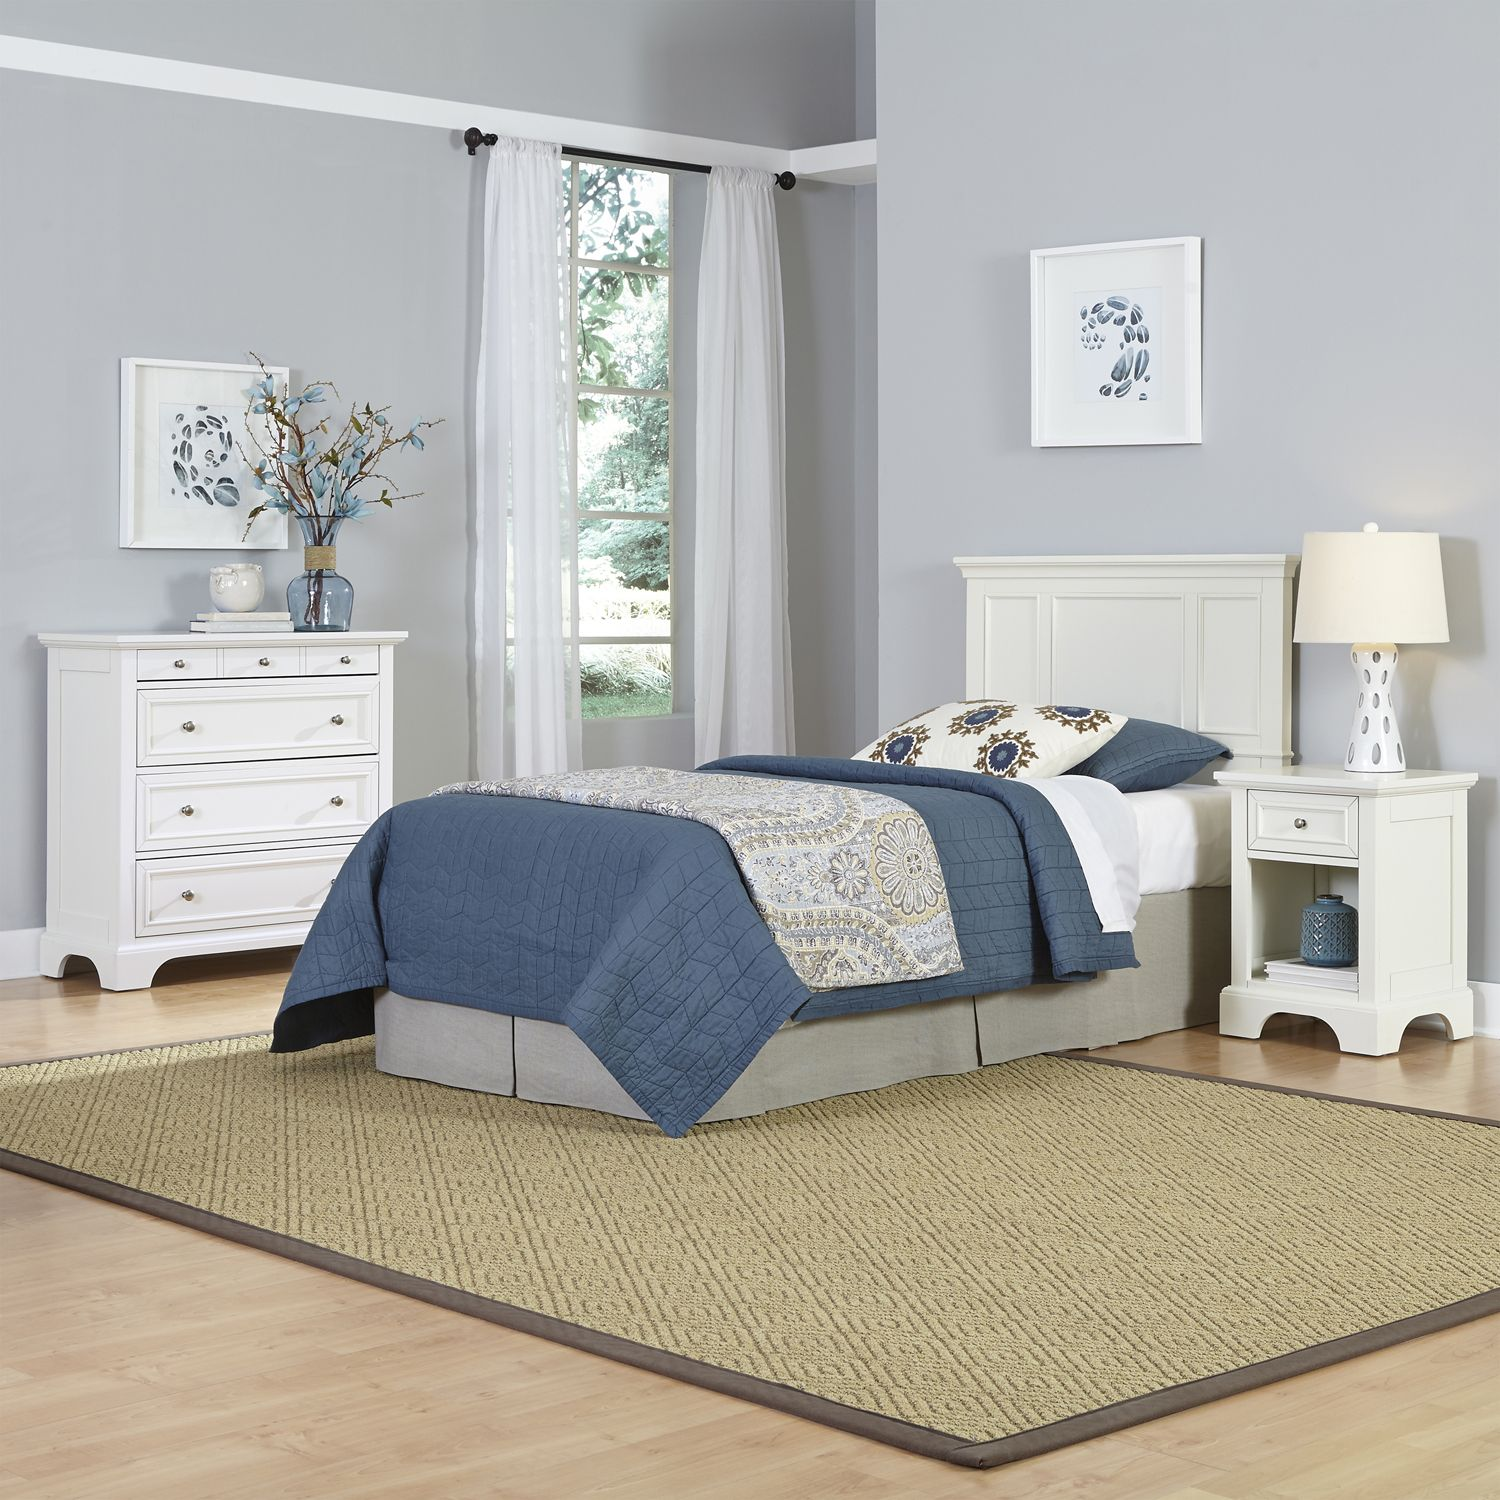 Fabulous Home Styles piece Naples Bedroom Set